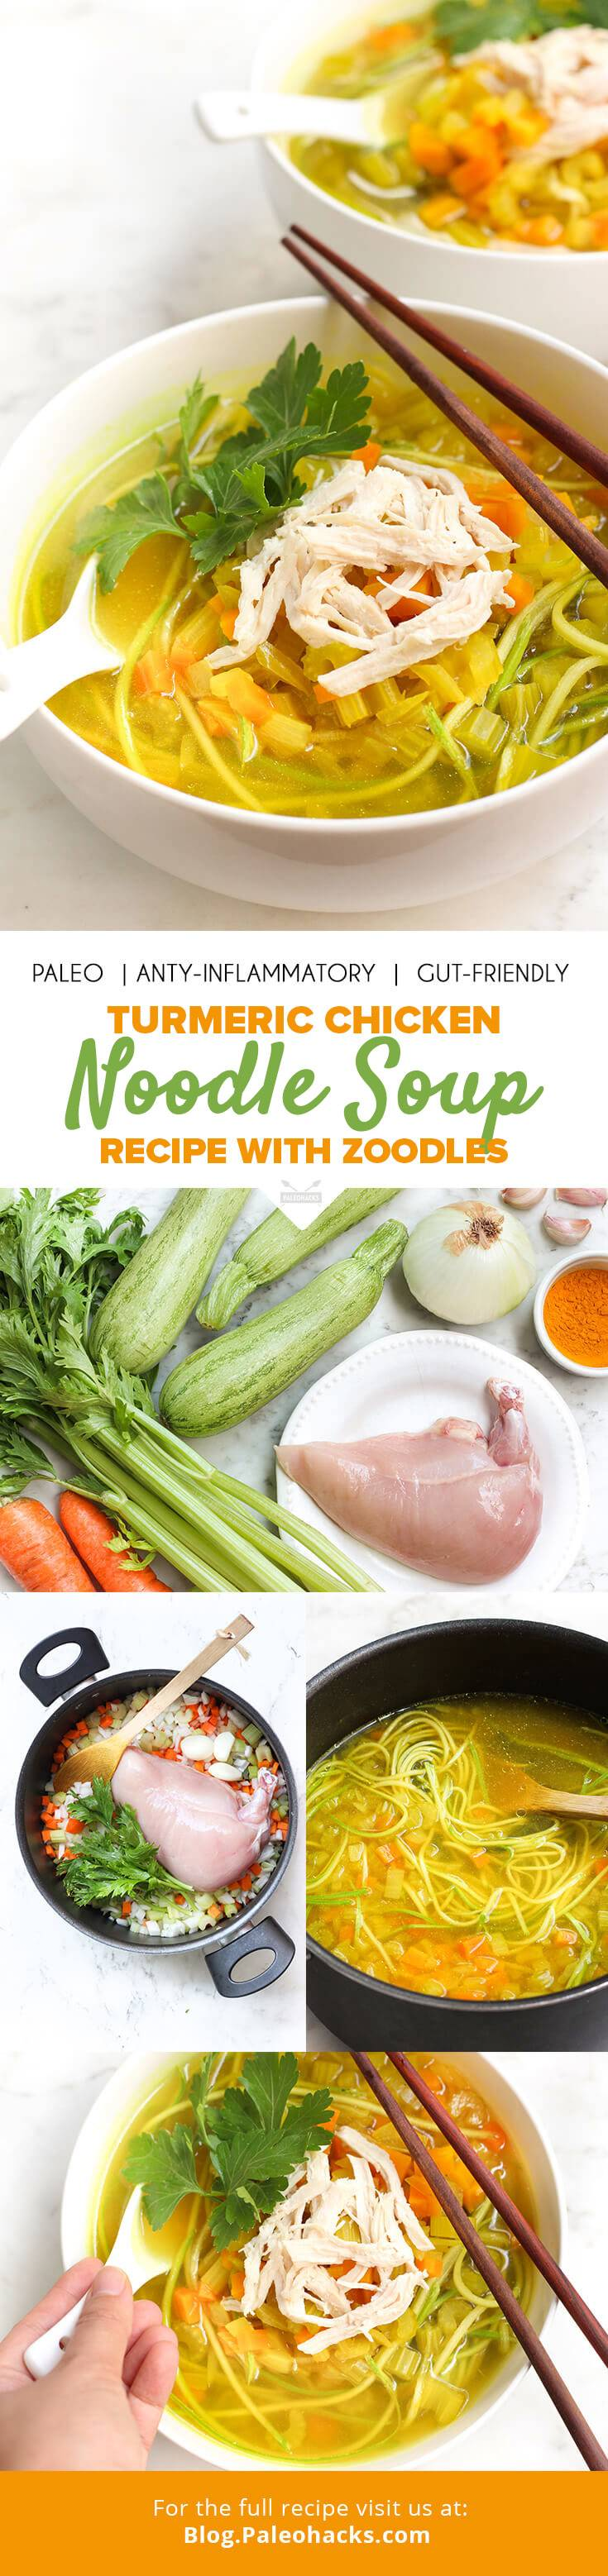 Traditional-PIN-Turmeric-Chicken-Noodle-Soup-Recipe-with-Zoodles.jpg